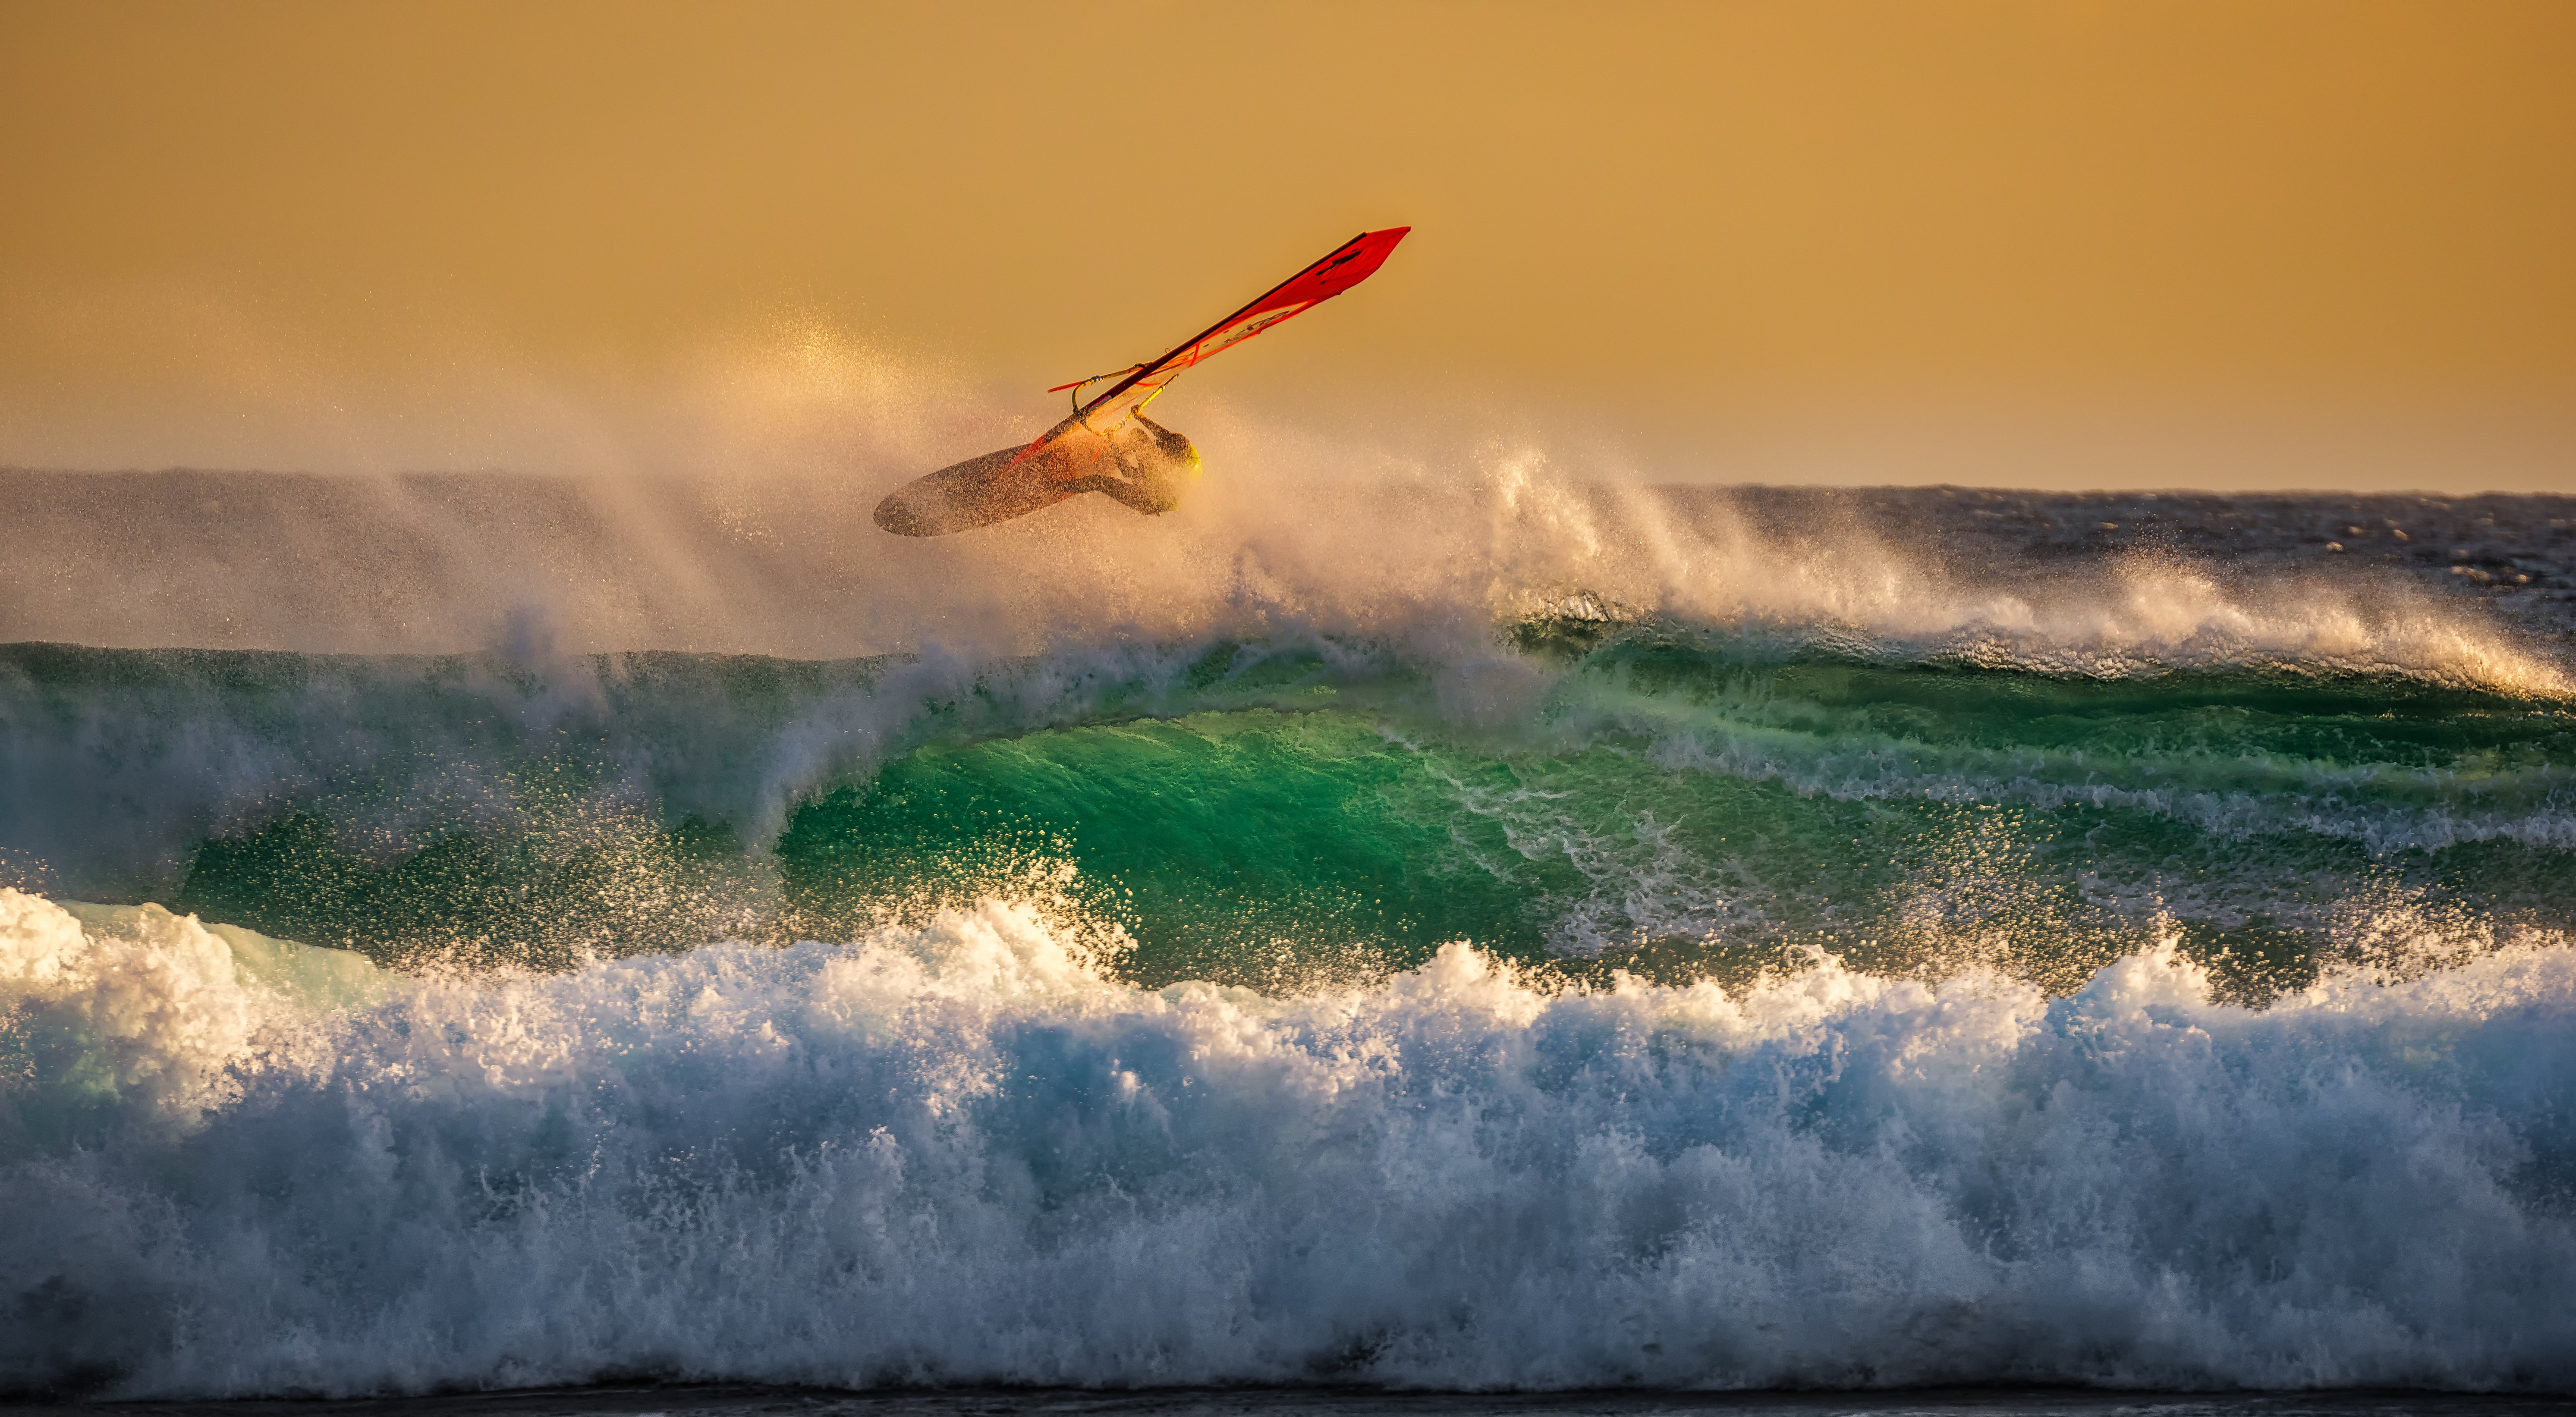 Person Ridding Wind Boat Above Ocean Wave, Action, Travel, Storm, Summer, HQ Photo